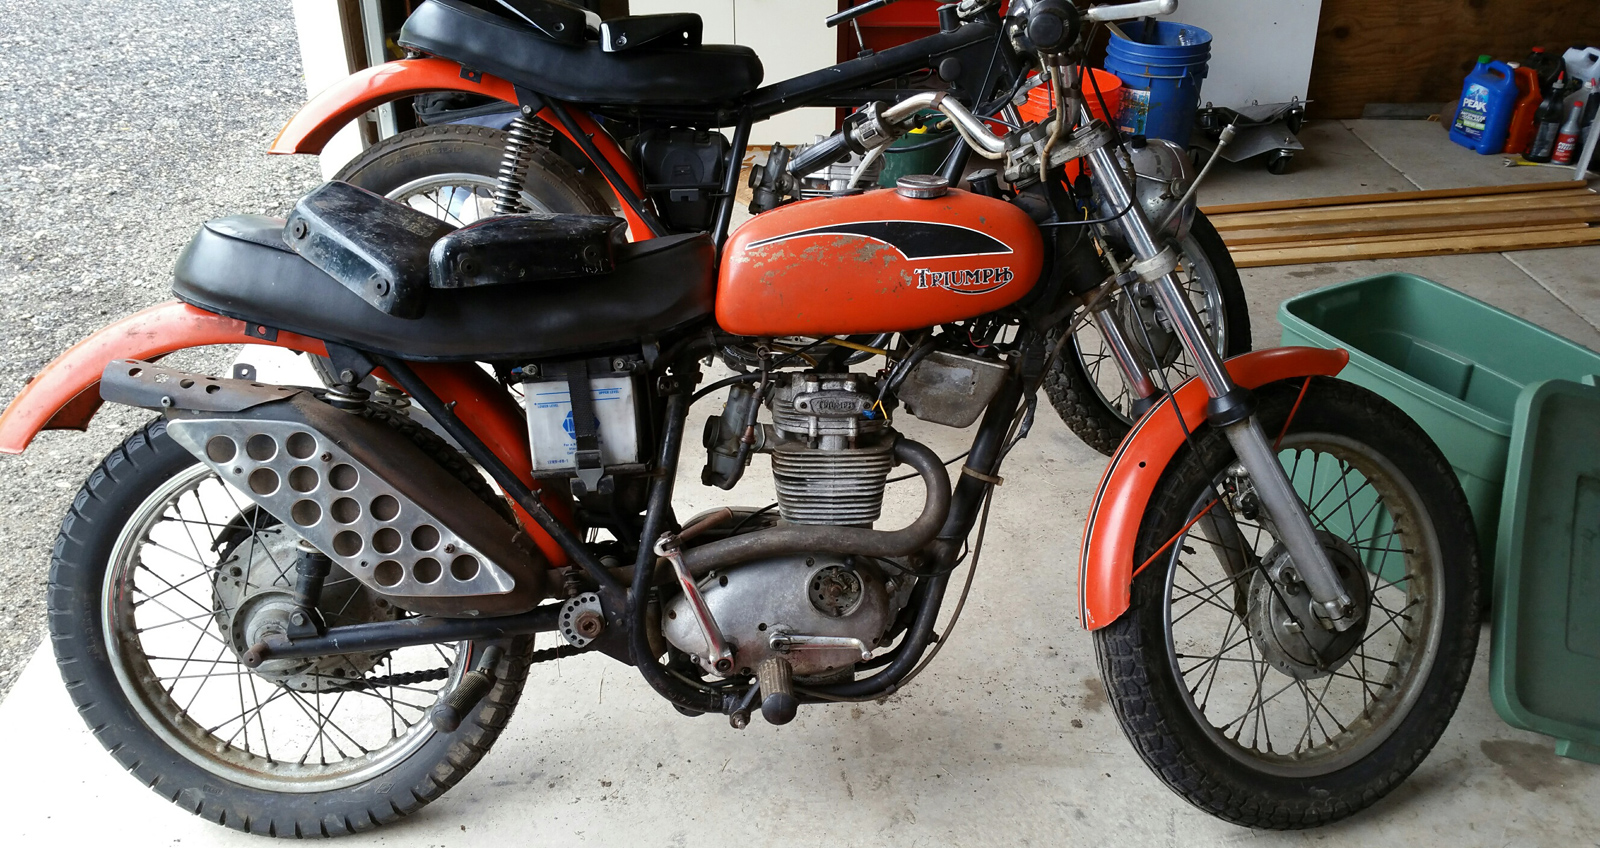 Buying & selling classic British motorcycles, restoring vintage motorcycles, MA, RI, CT, NH, VT, ME, NY